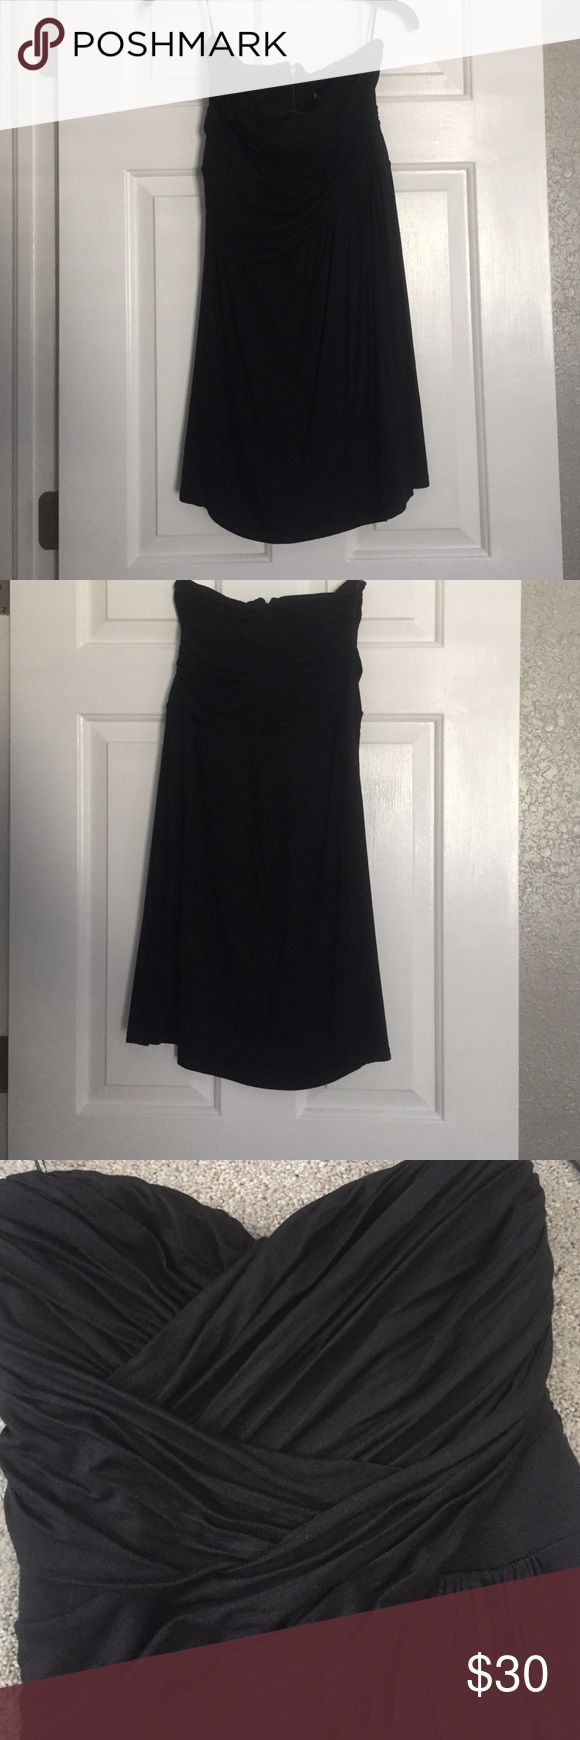 Express black tube top dress Express black tube top dress with rouching detail on top. Back zipper with hook closure. Worn once Express Dresses Mini